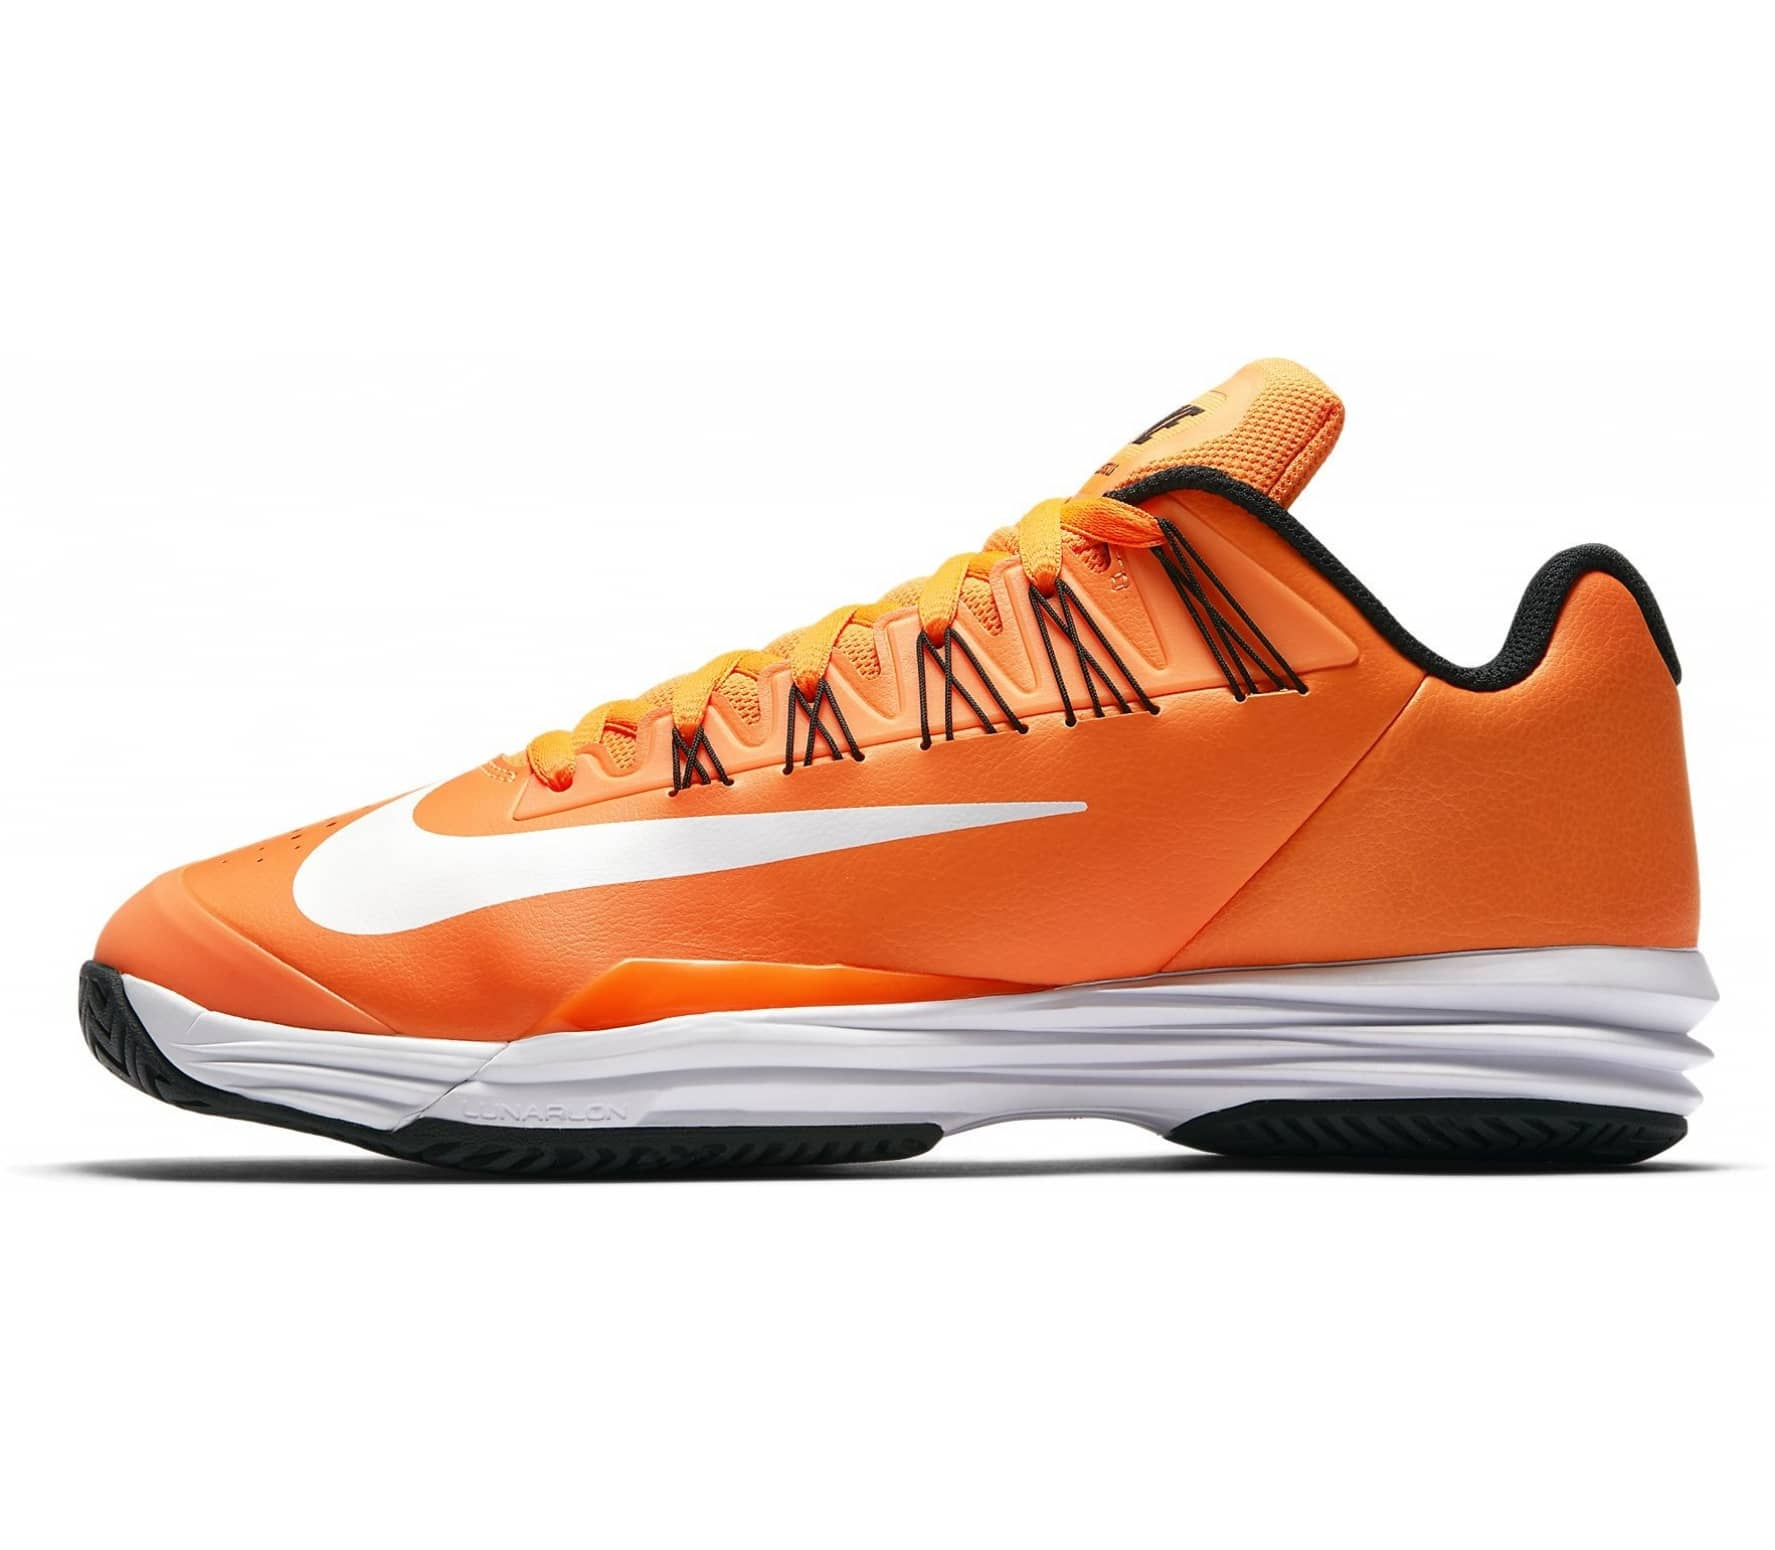 55d3ca9b942c Nike - Lunar Ballistec 1.5 men s tennis shoes (orange black) - buy ...